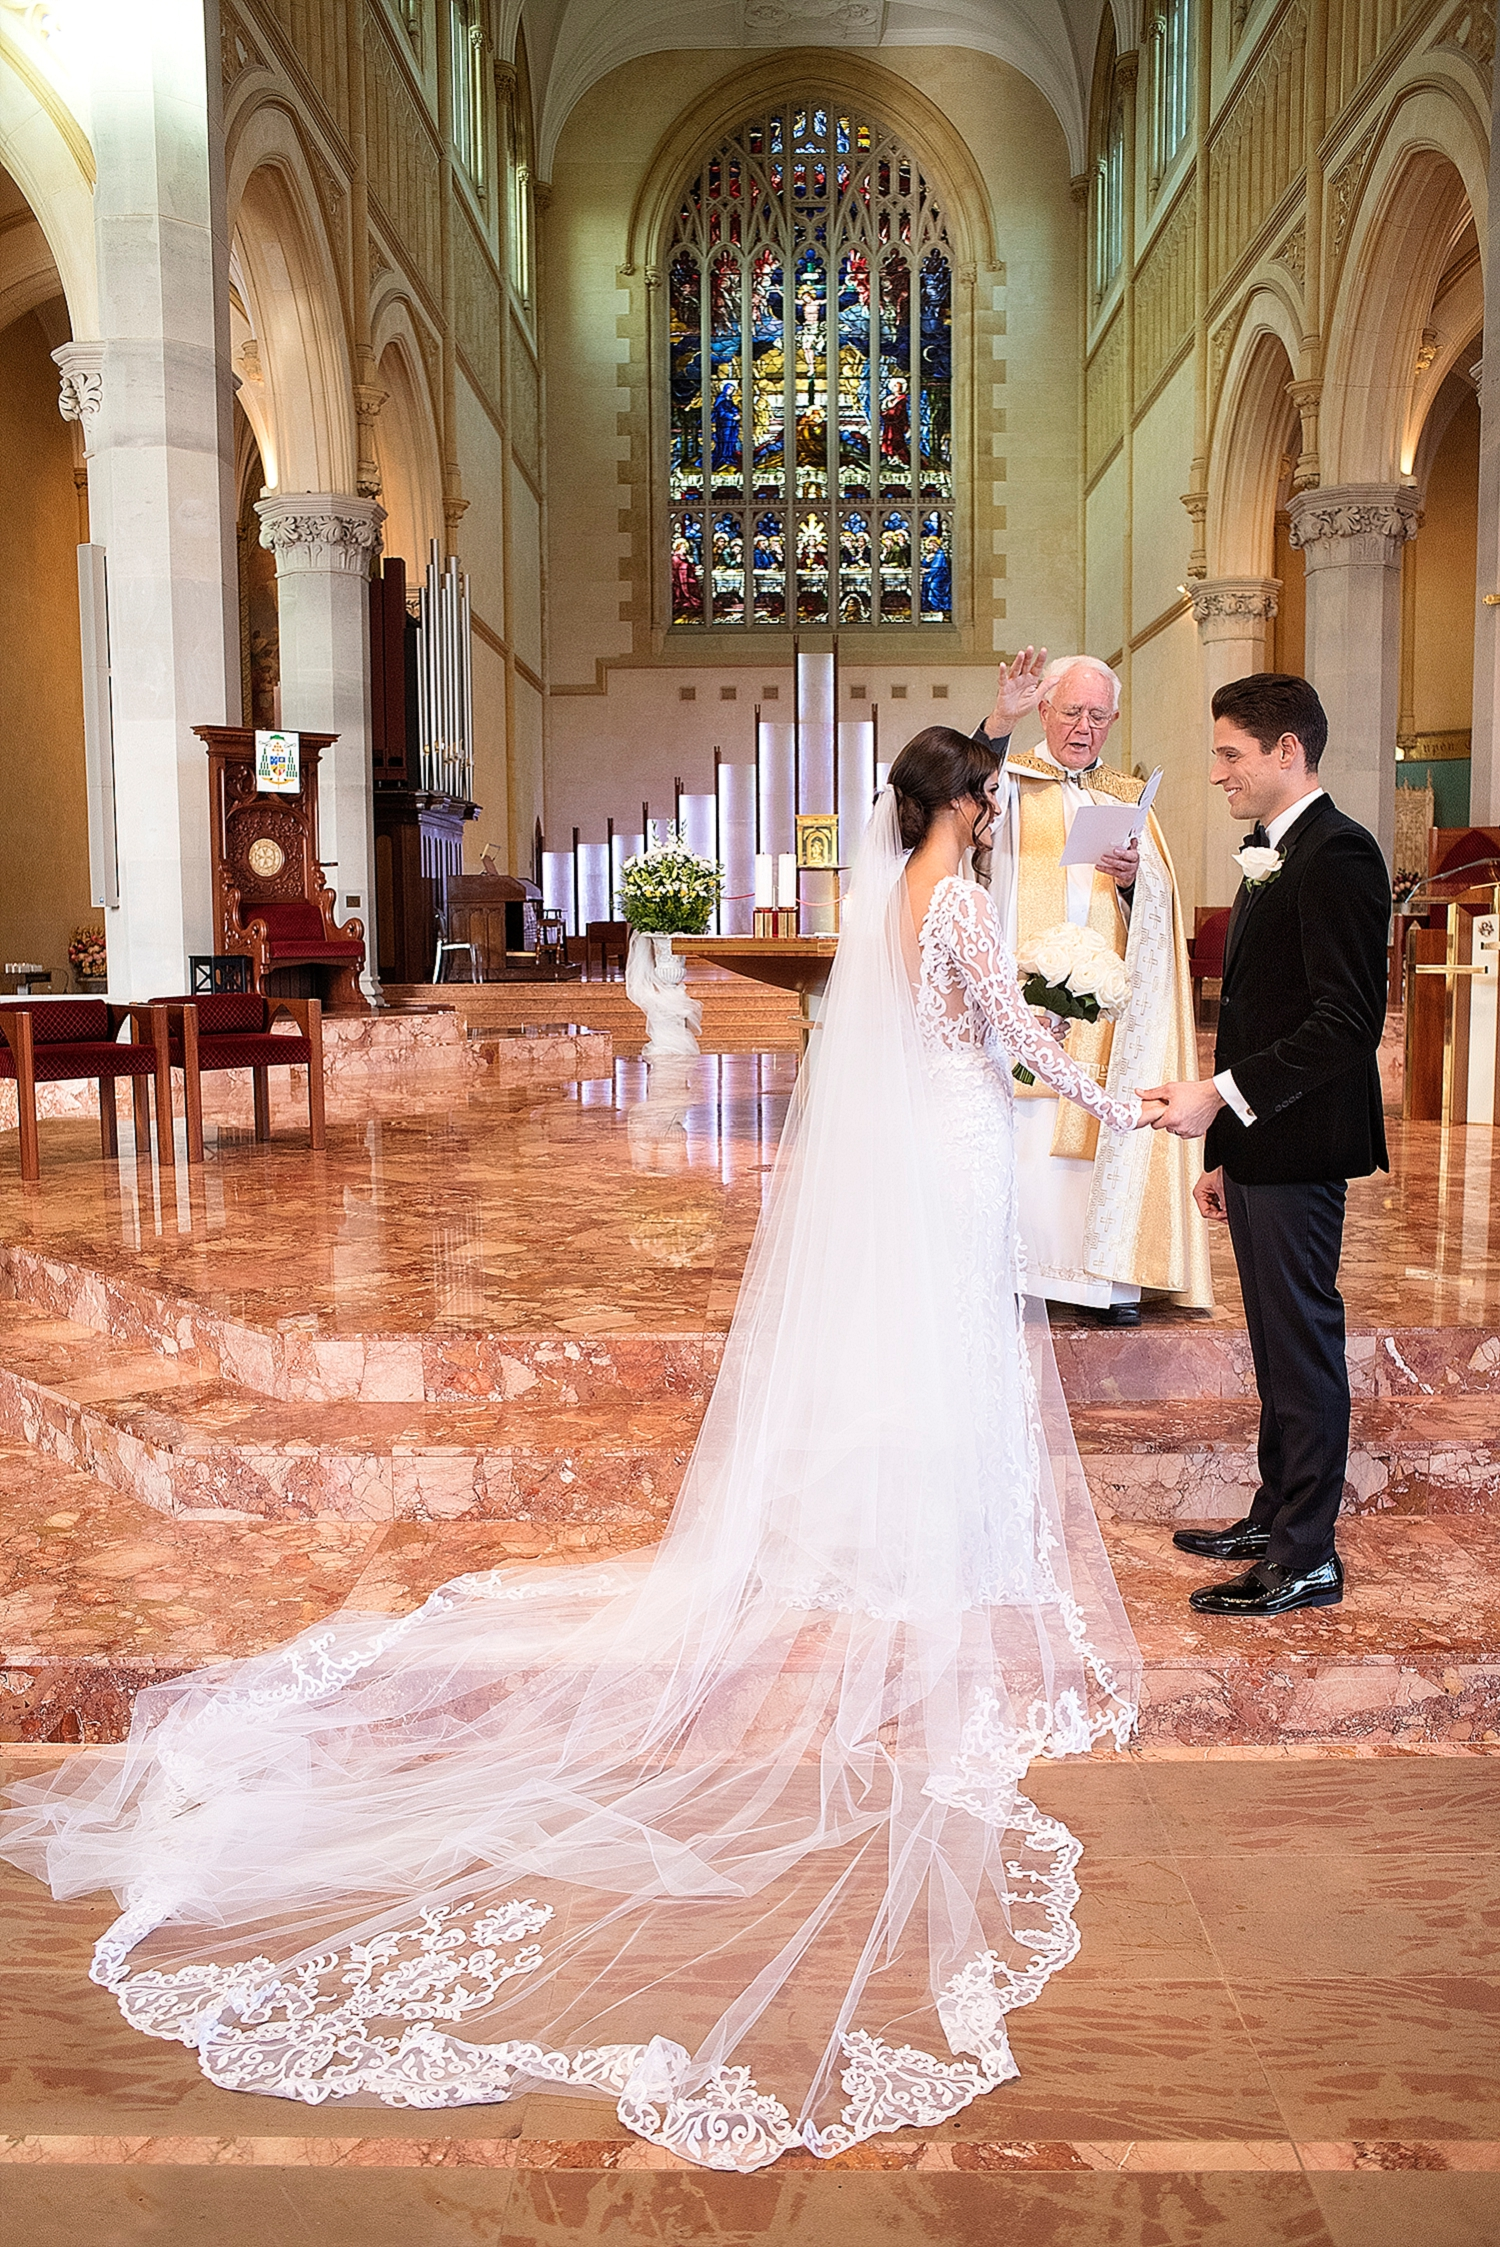 033_st marys cathedral lace wedding gown aelkemi state reception centre wedding perth.JPG